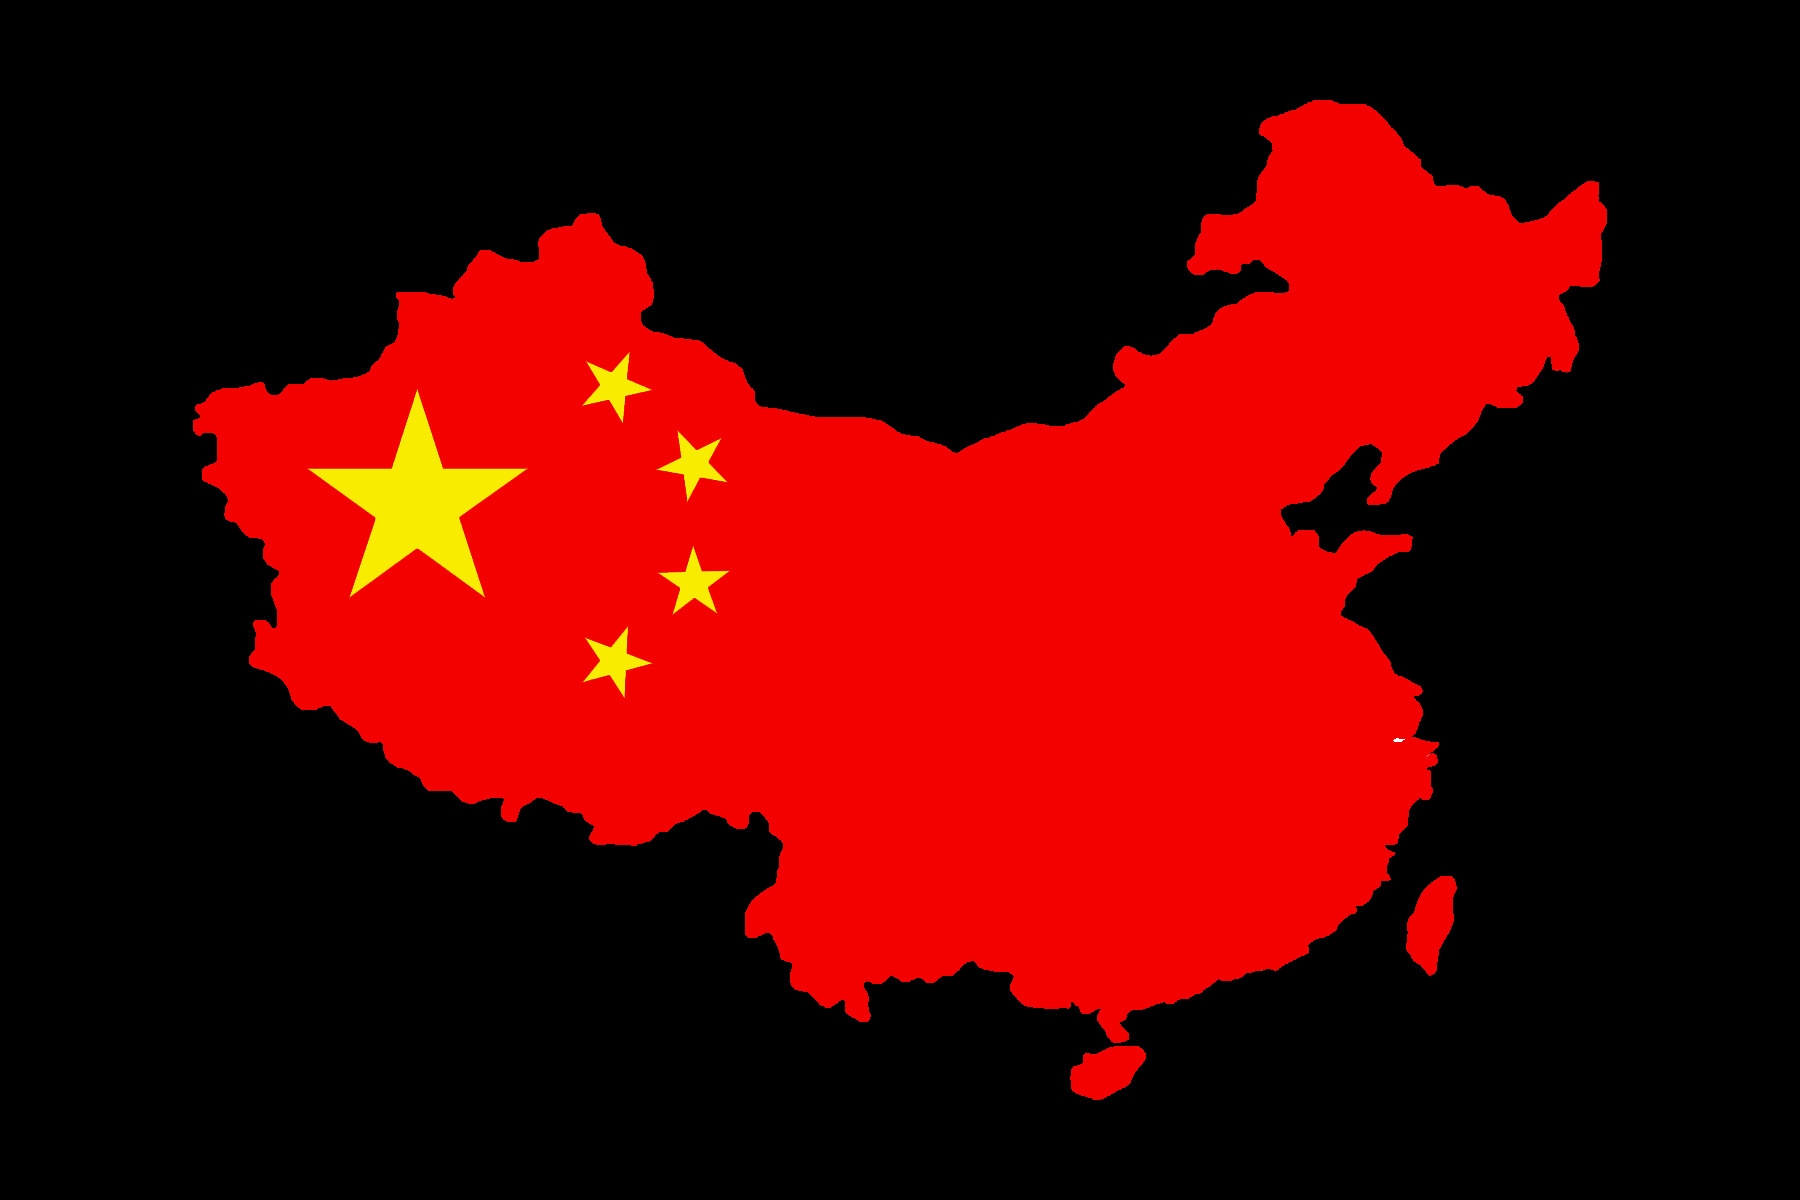 China Map over Black Background 449.01 Kb